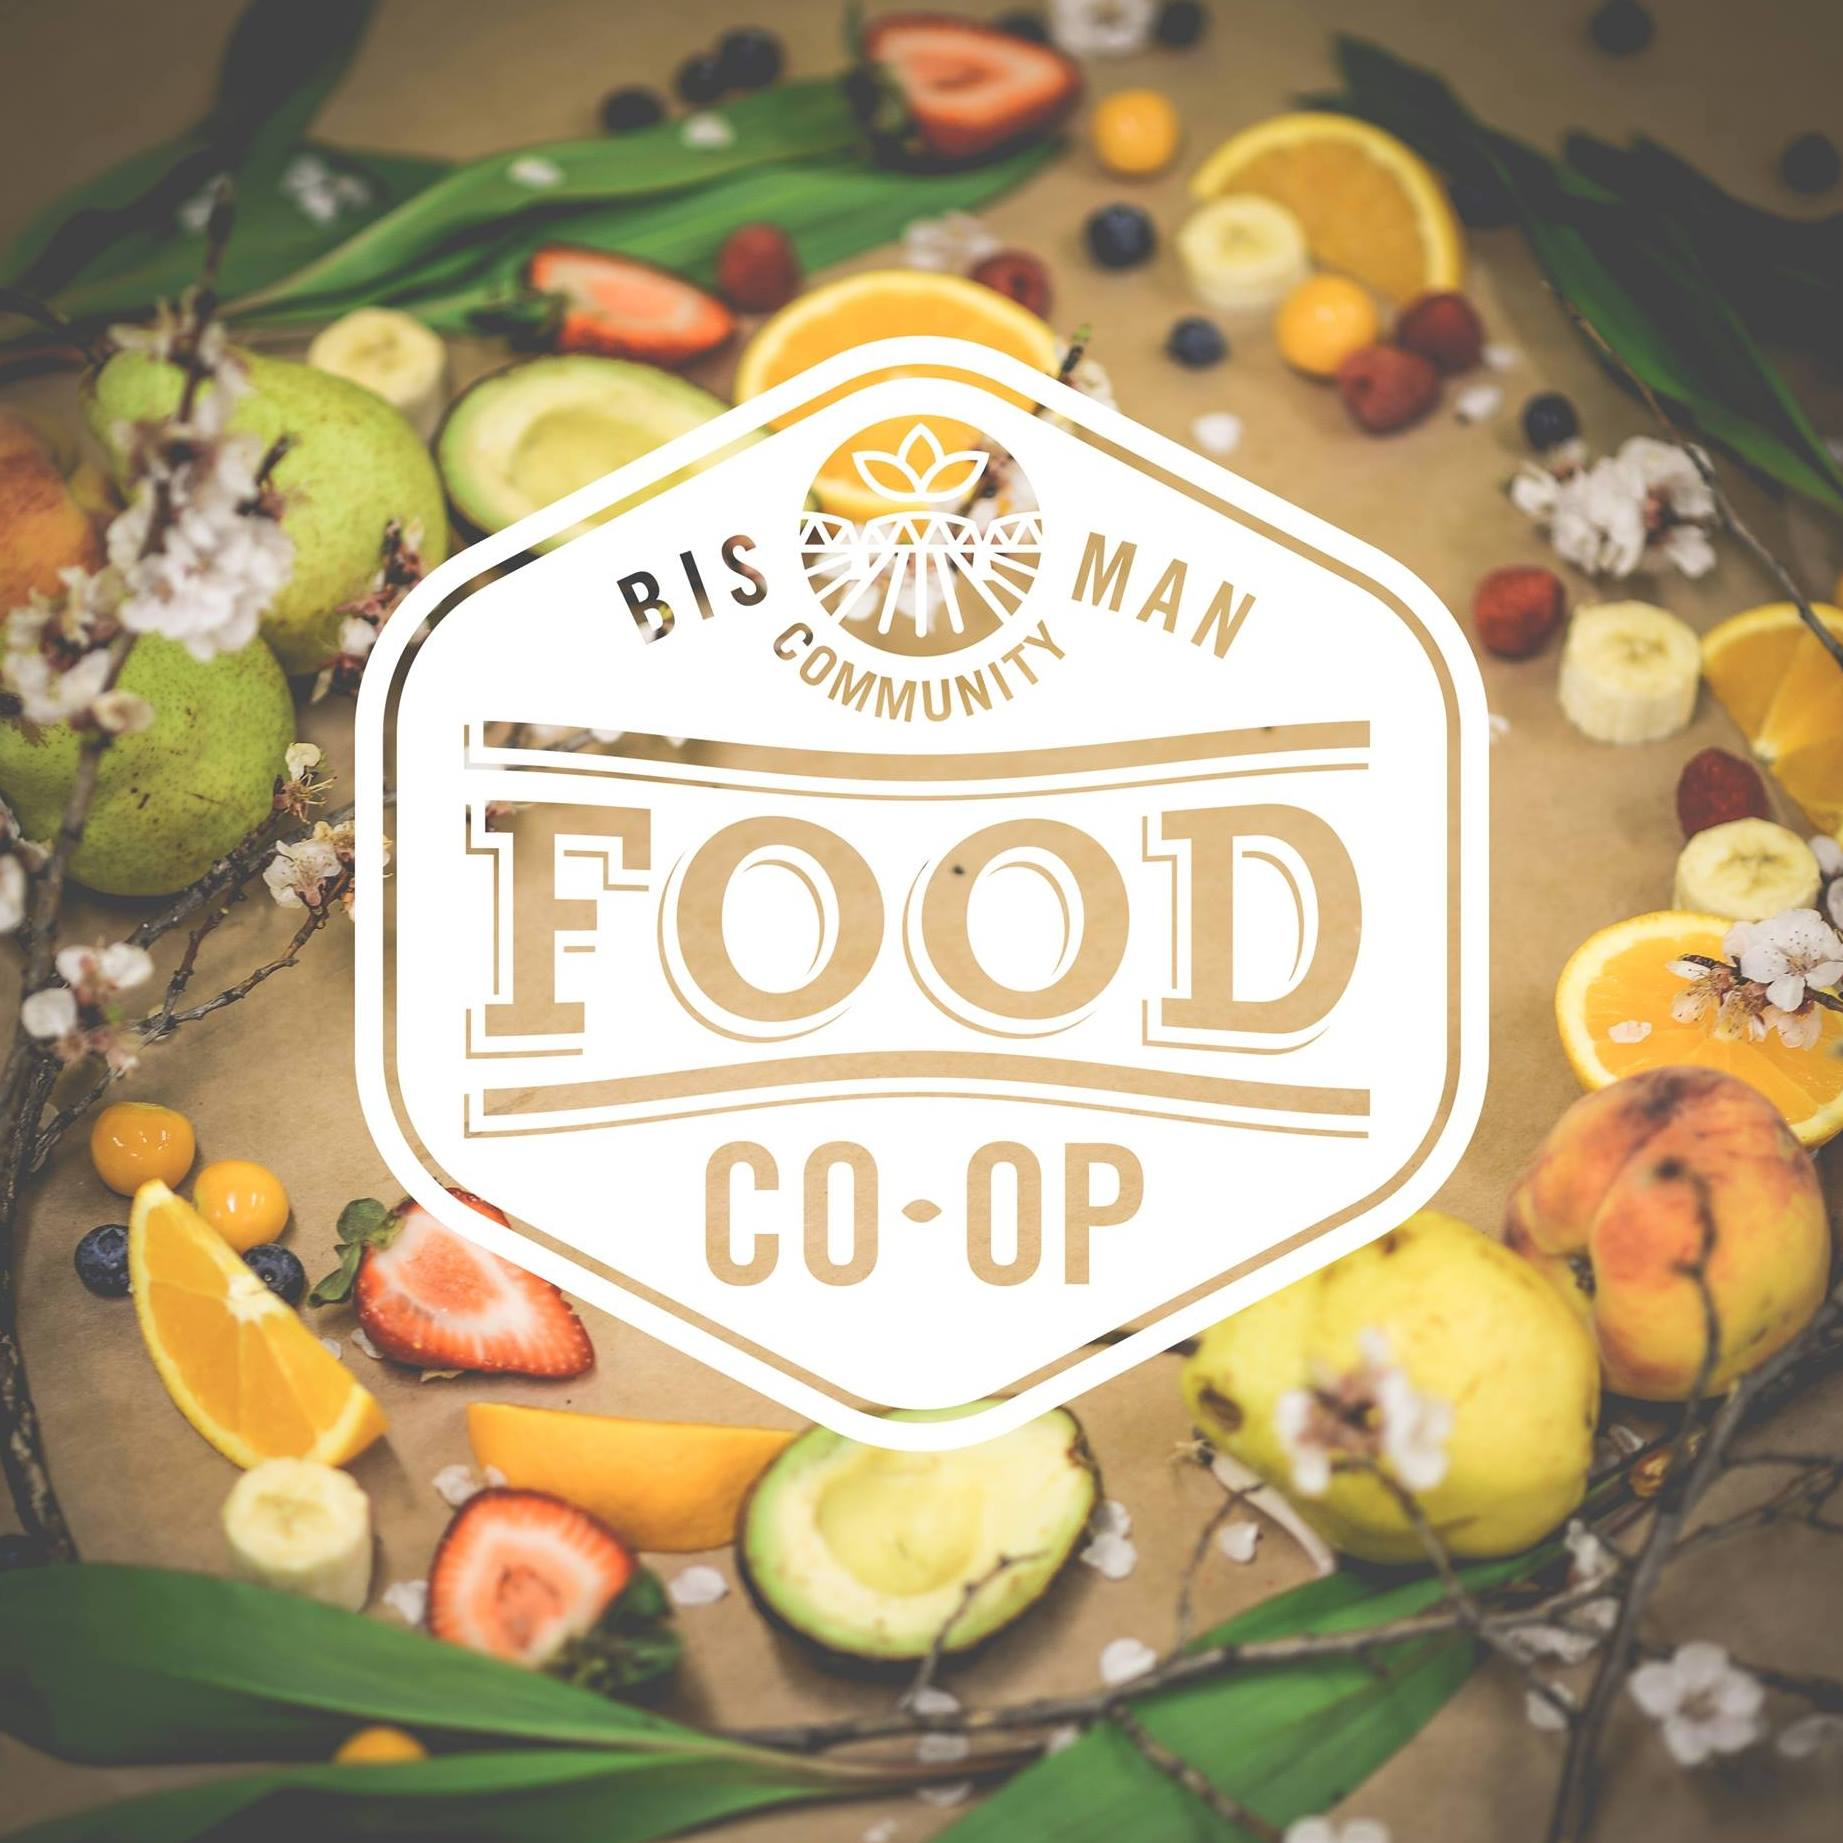 Bis-Man Community Food Co-op - from Facebook page